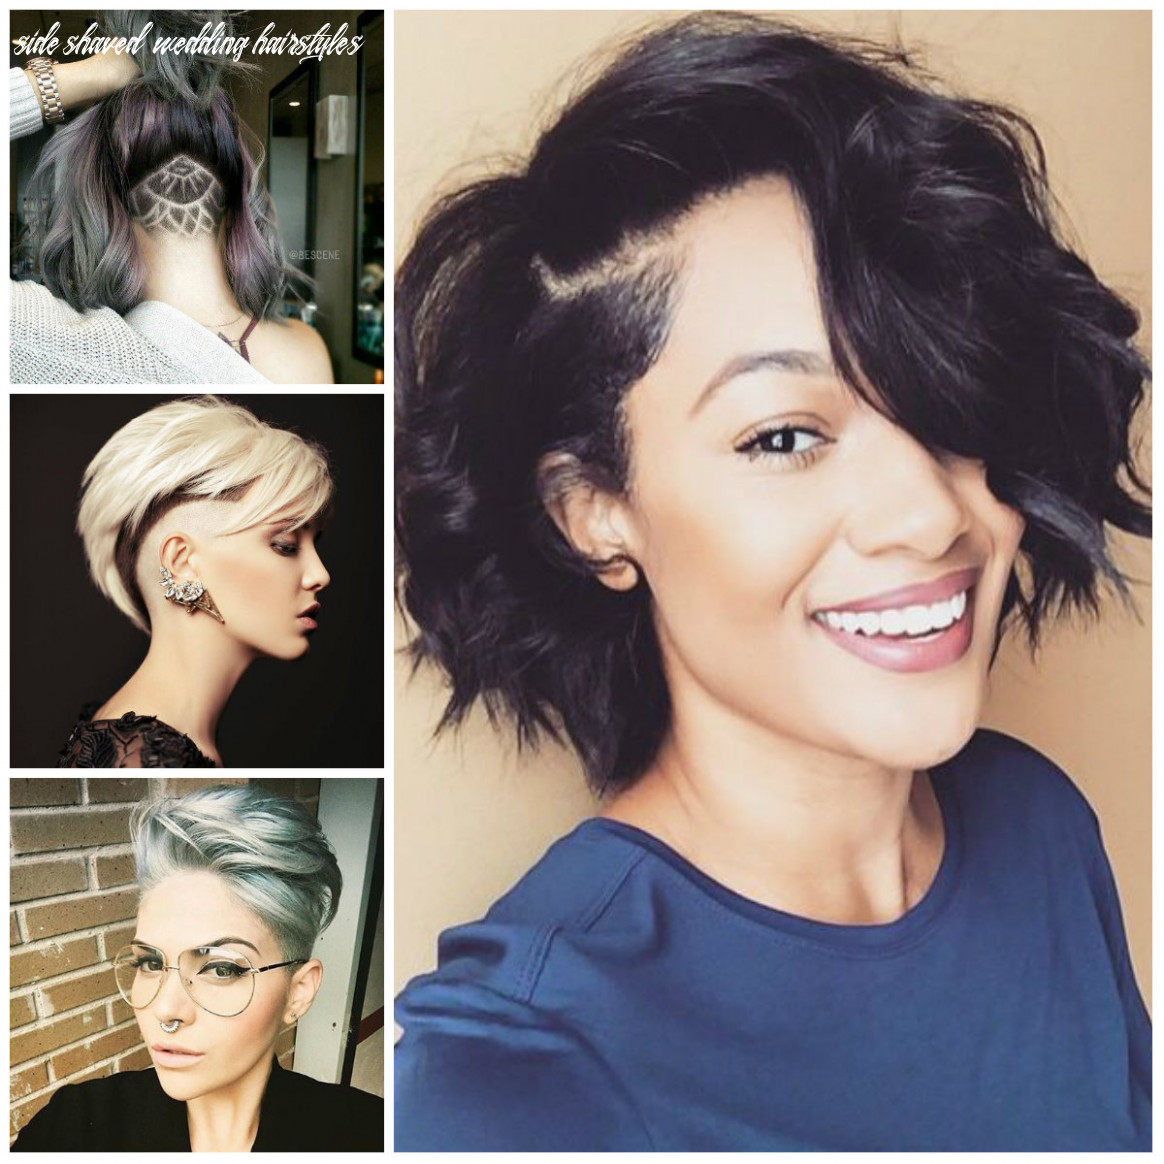 Sassy and edgy shaved hairstyles for females | 11 haircuts